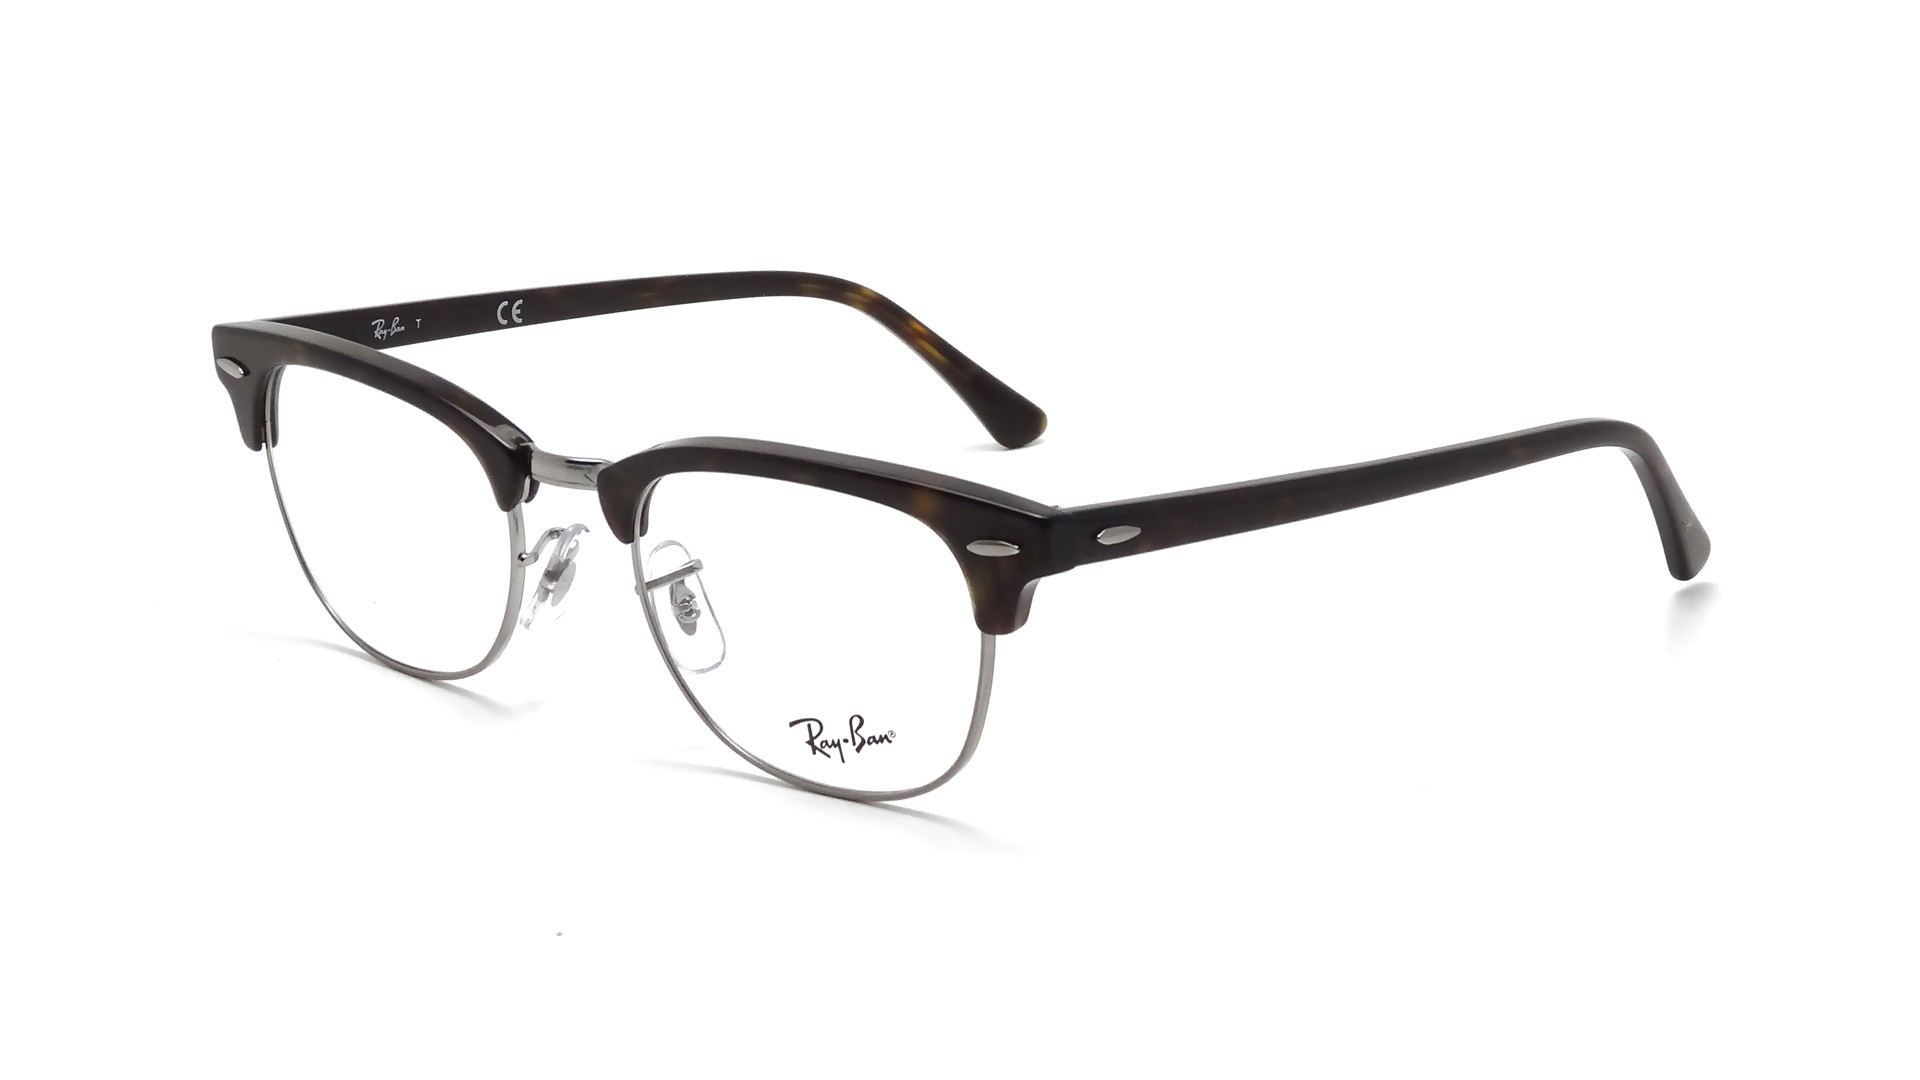 Rb5154 Clubmaster Eyeglasses Price www.tapdance.org